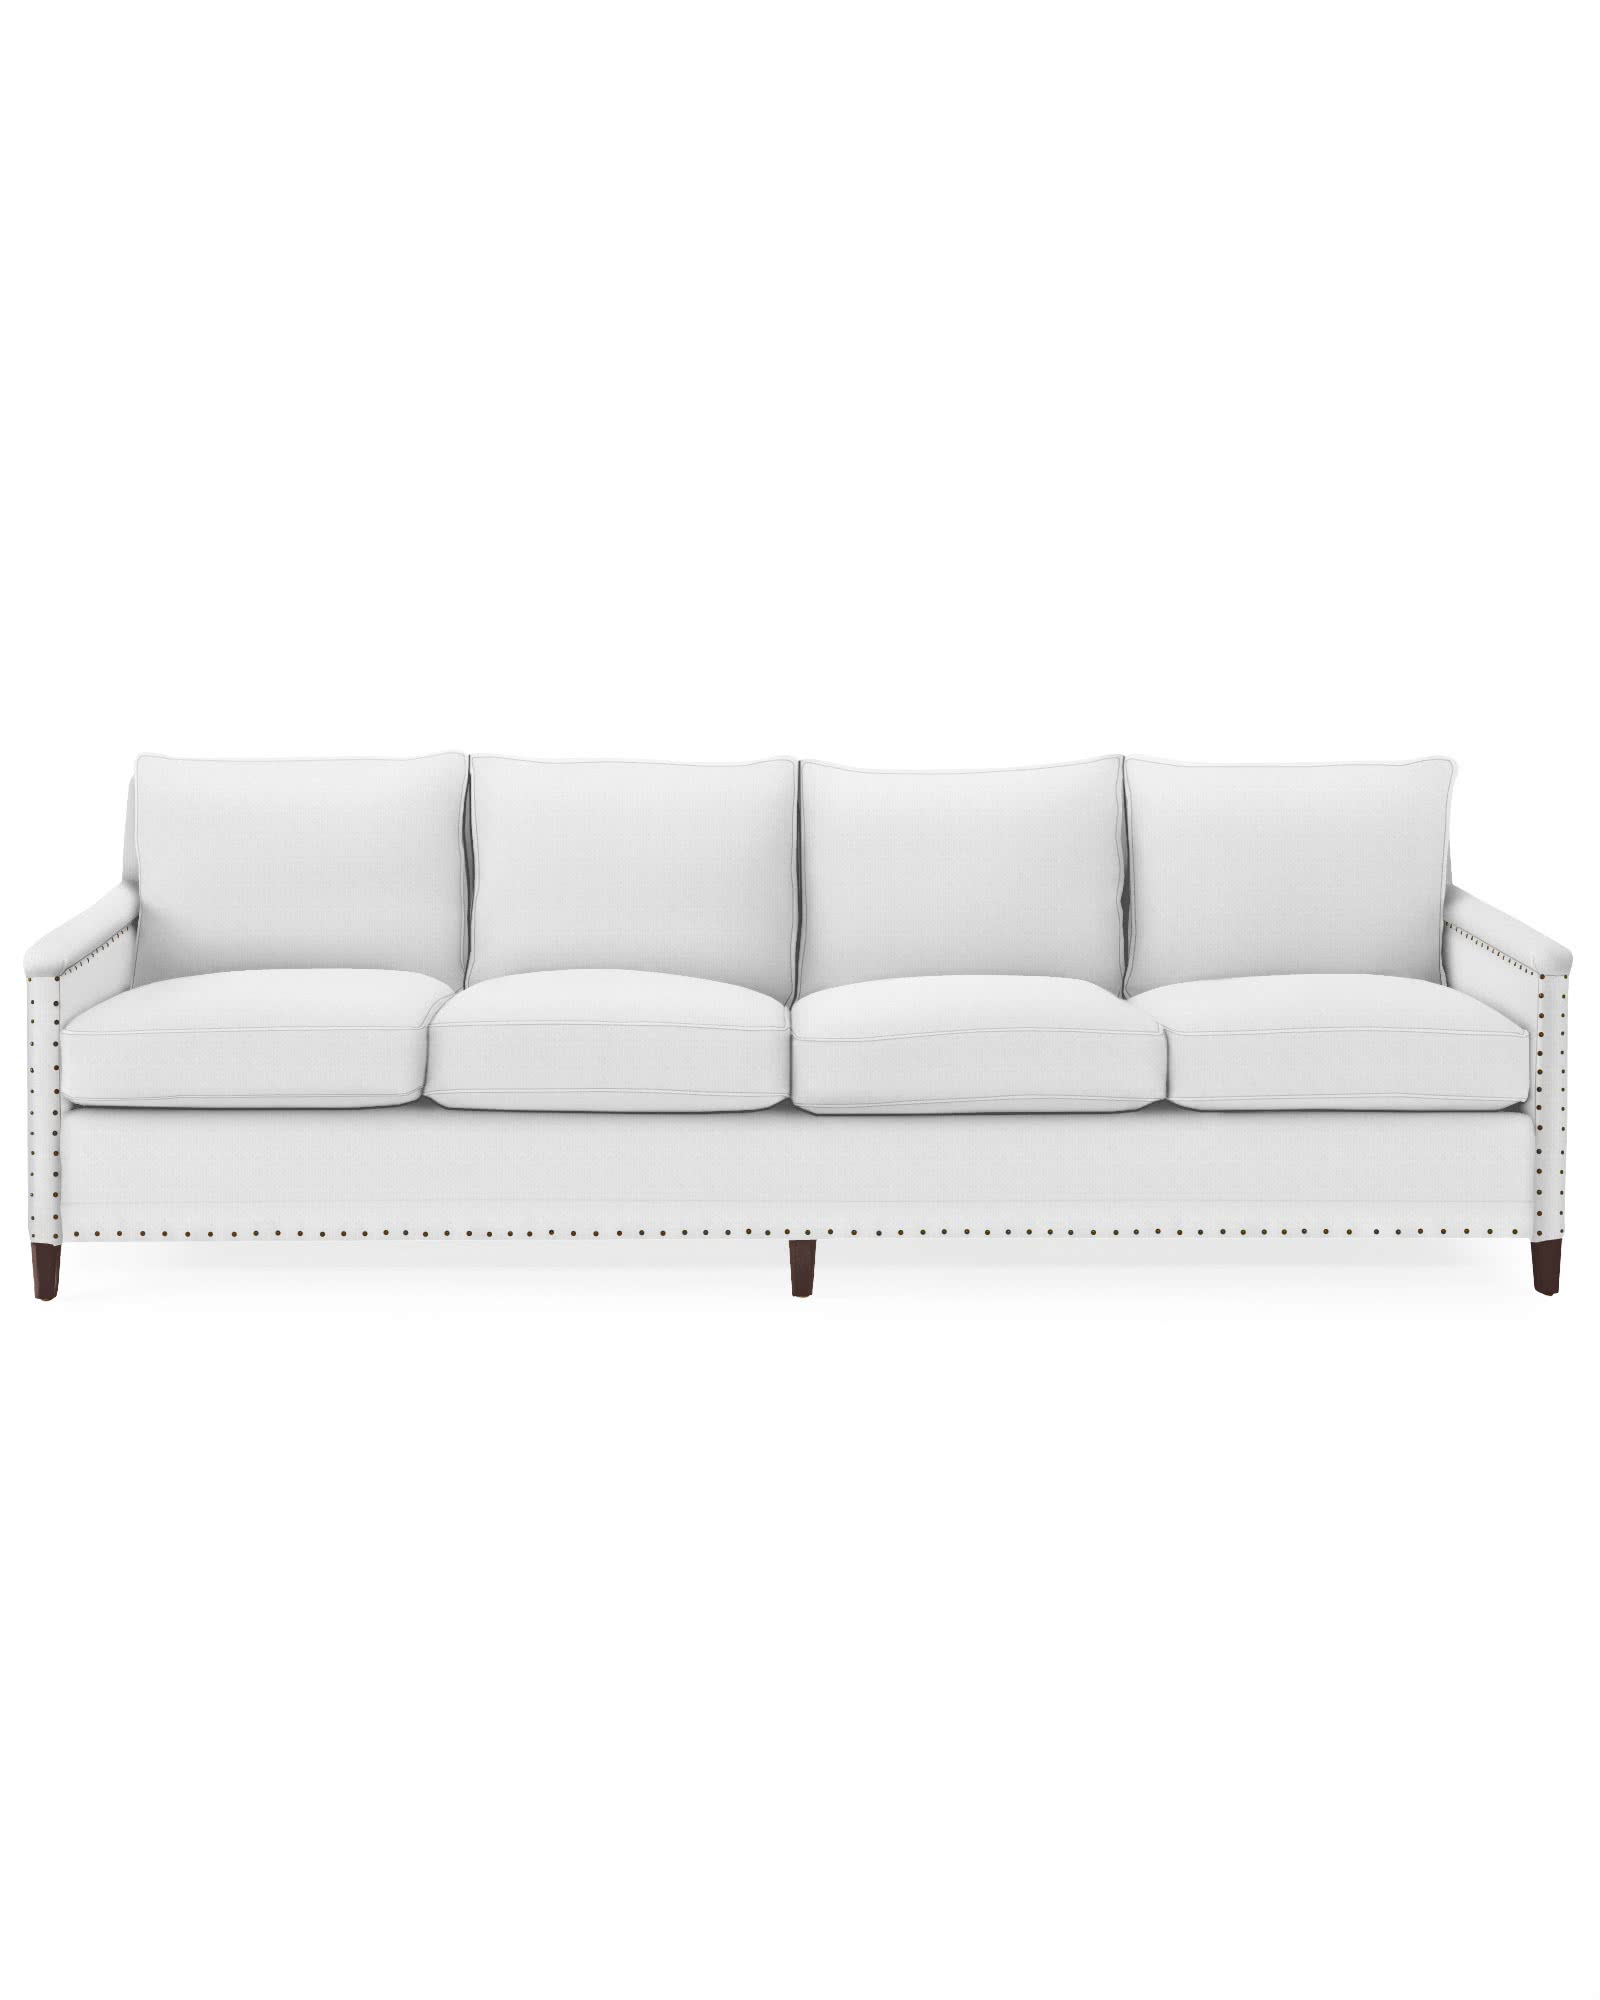 Spruce Street 4-Seat Sofa with Nailheads